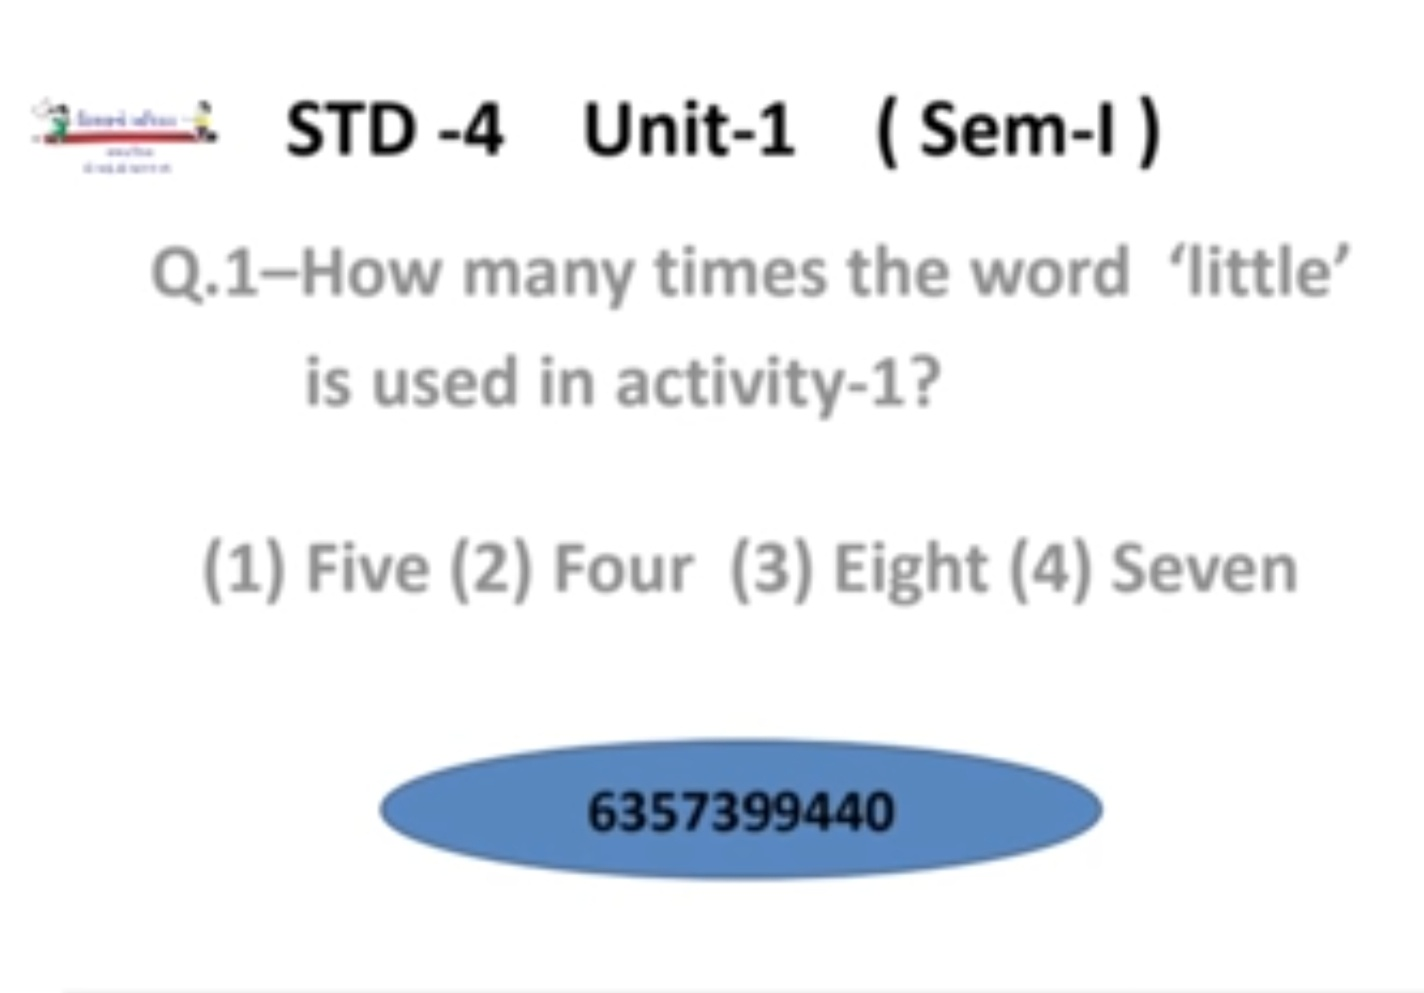 STD-3-4-5-DATE-10-12-2020-HOME-LEARNING-QUESTIONS-AND-ANSWERS.